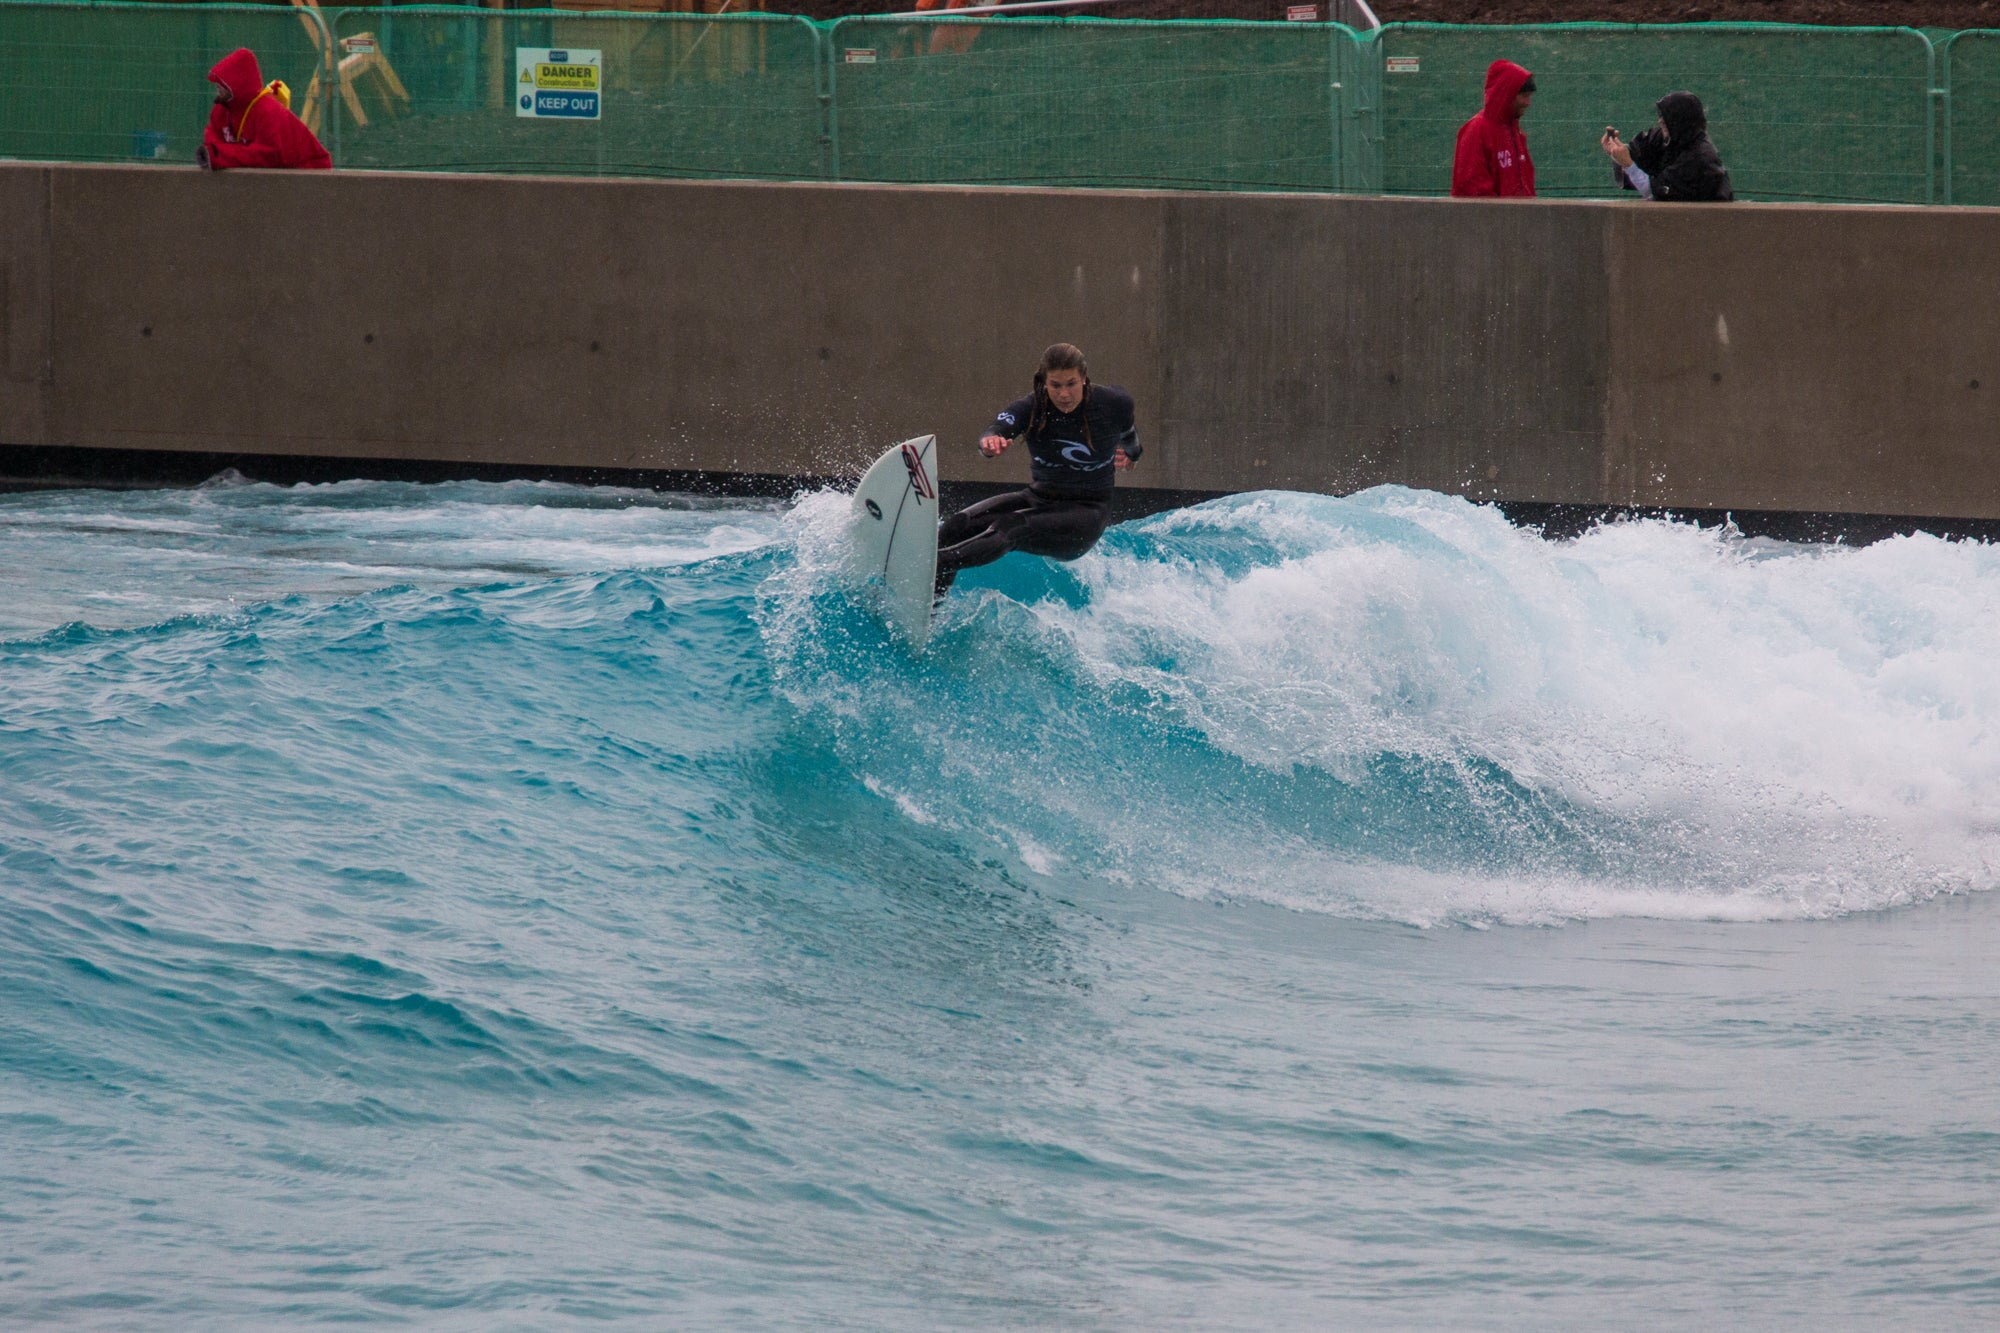 Emily Currie surfing The Wave in Bristol